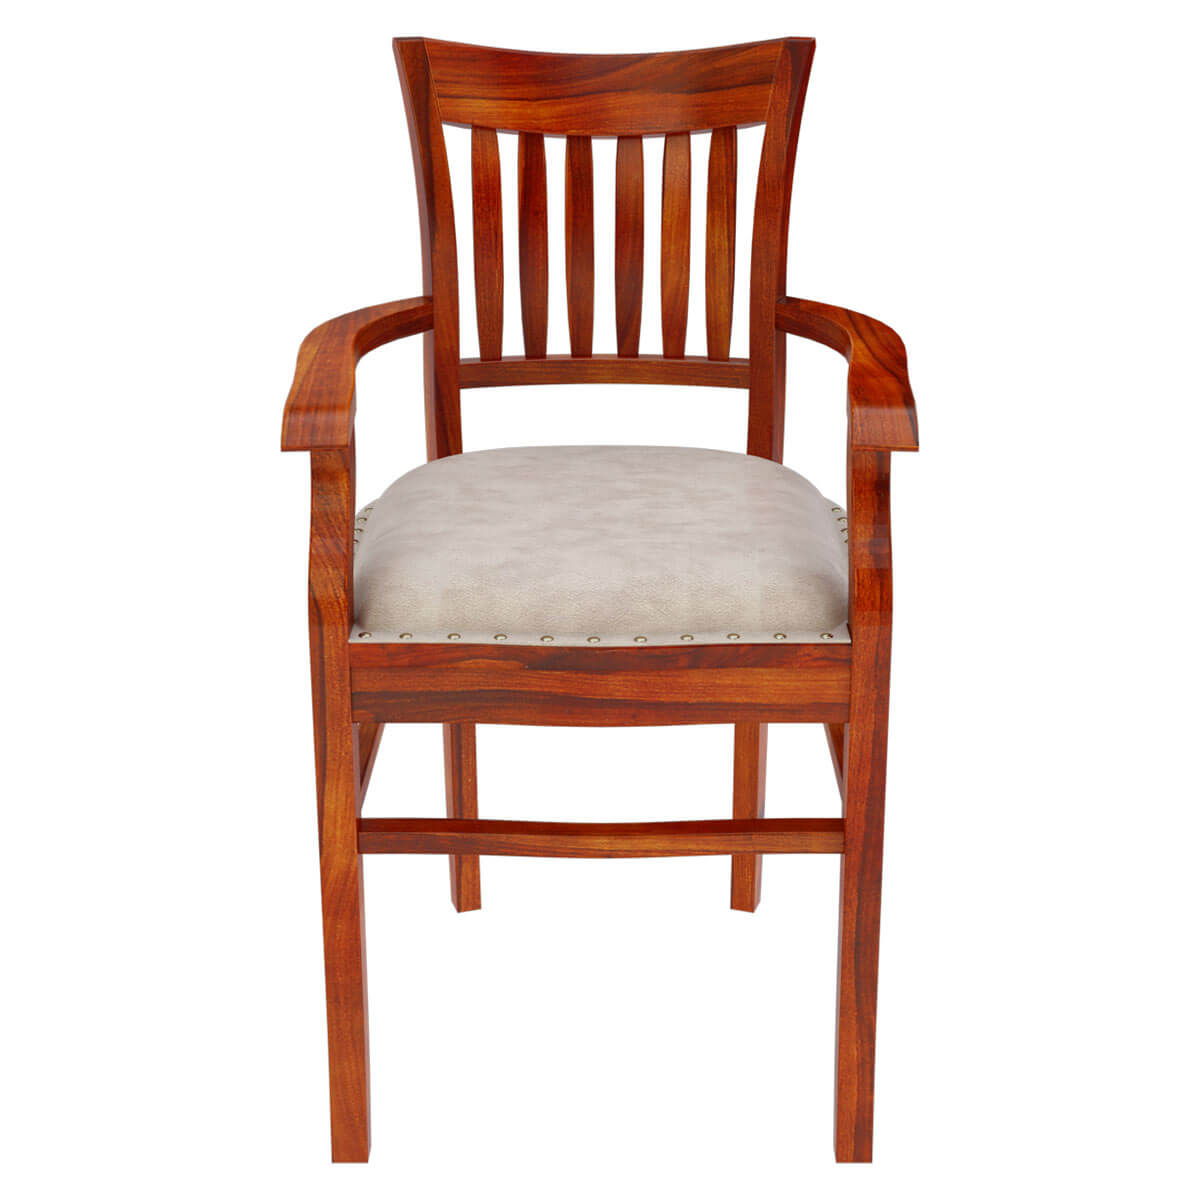 Solid wood arm chair leather cushion dining furniture for Wood dining chairs with arms